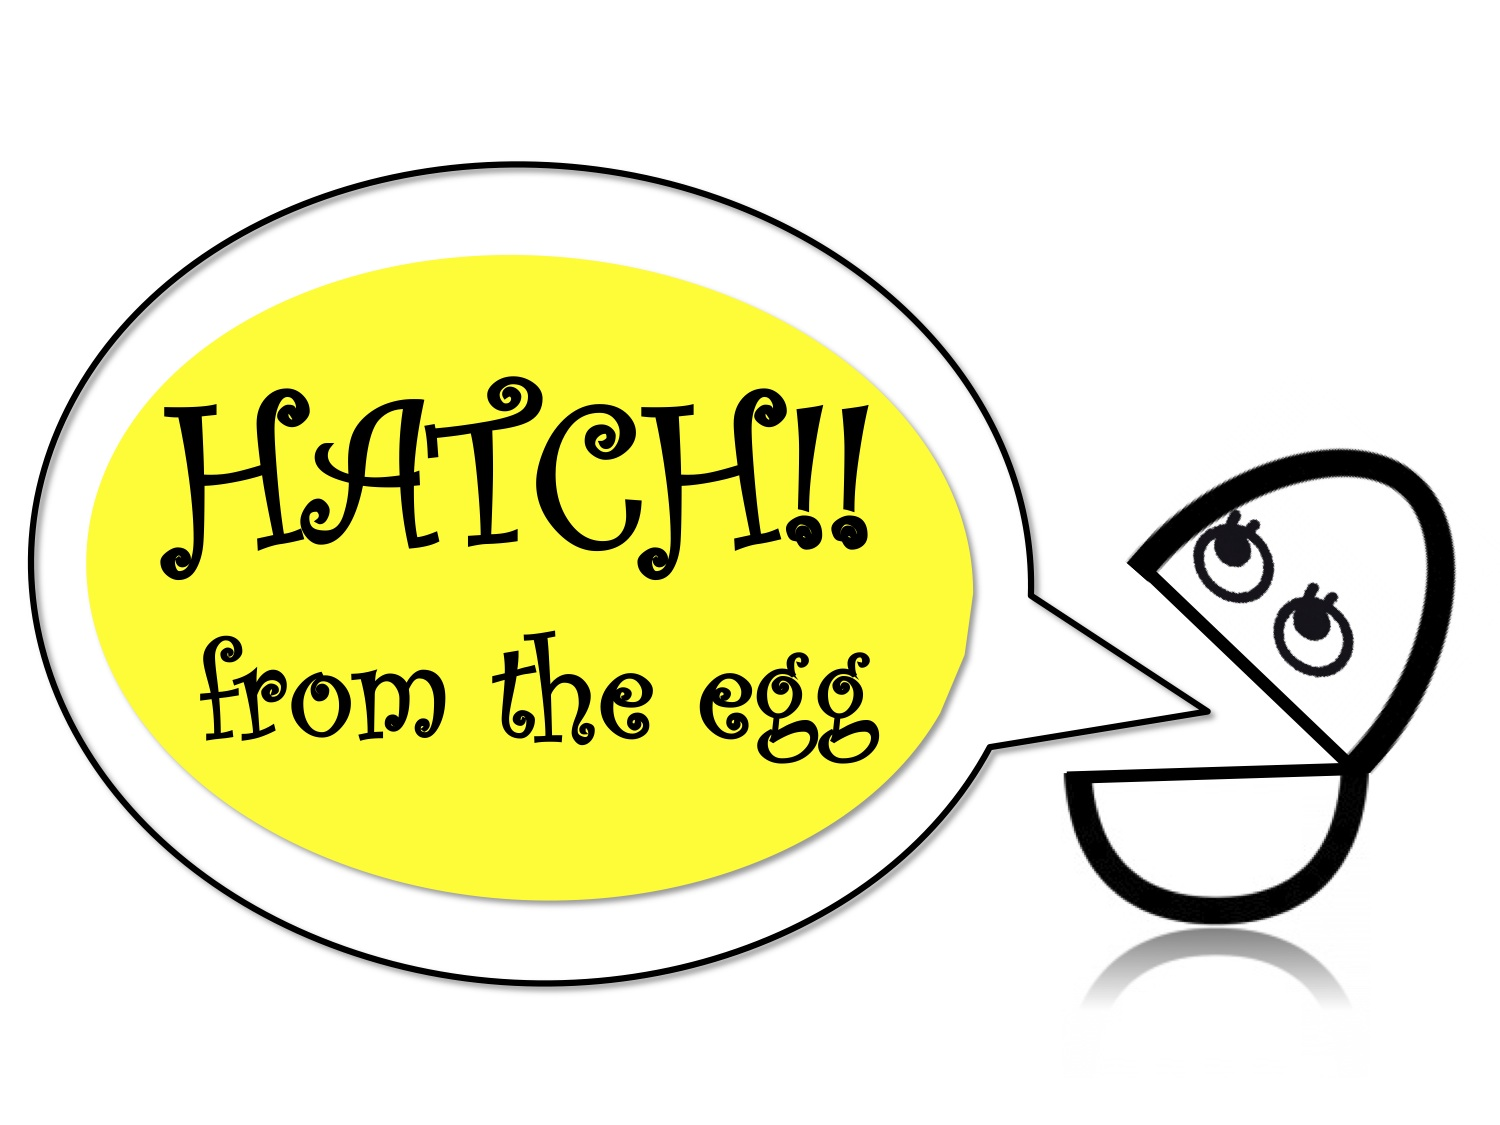 HATCH!! from the egg Vol.2